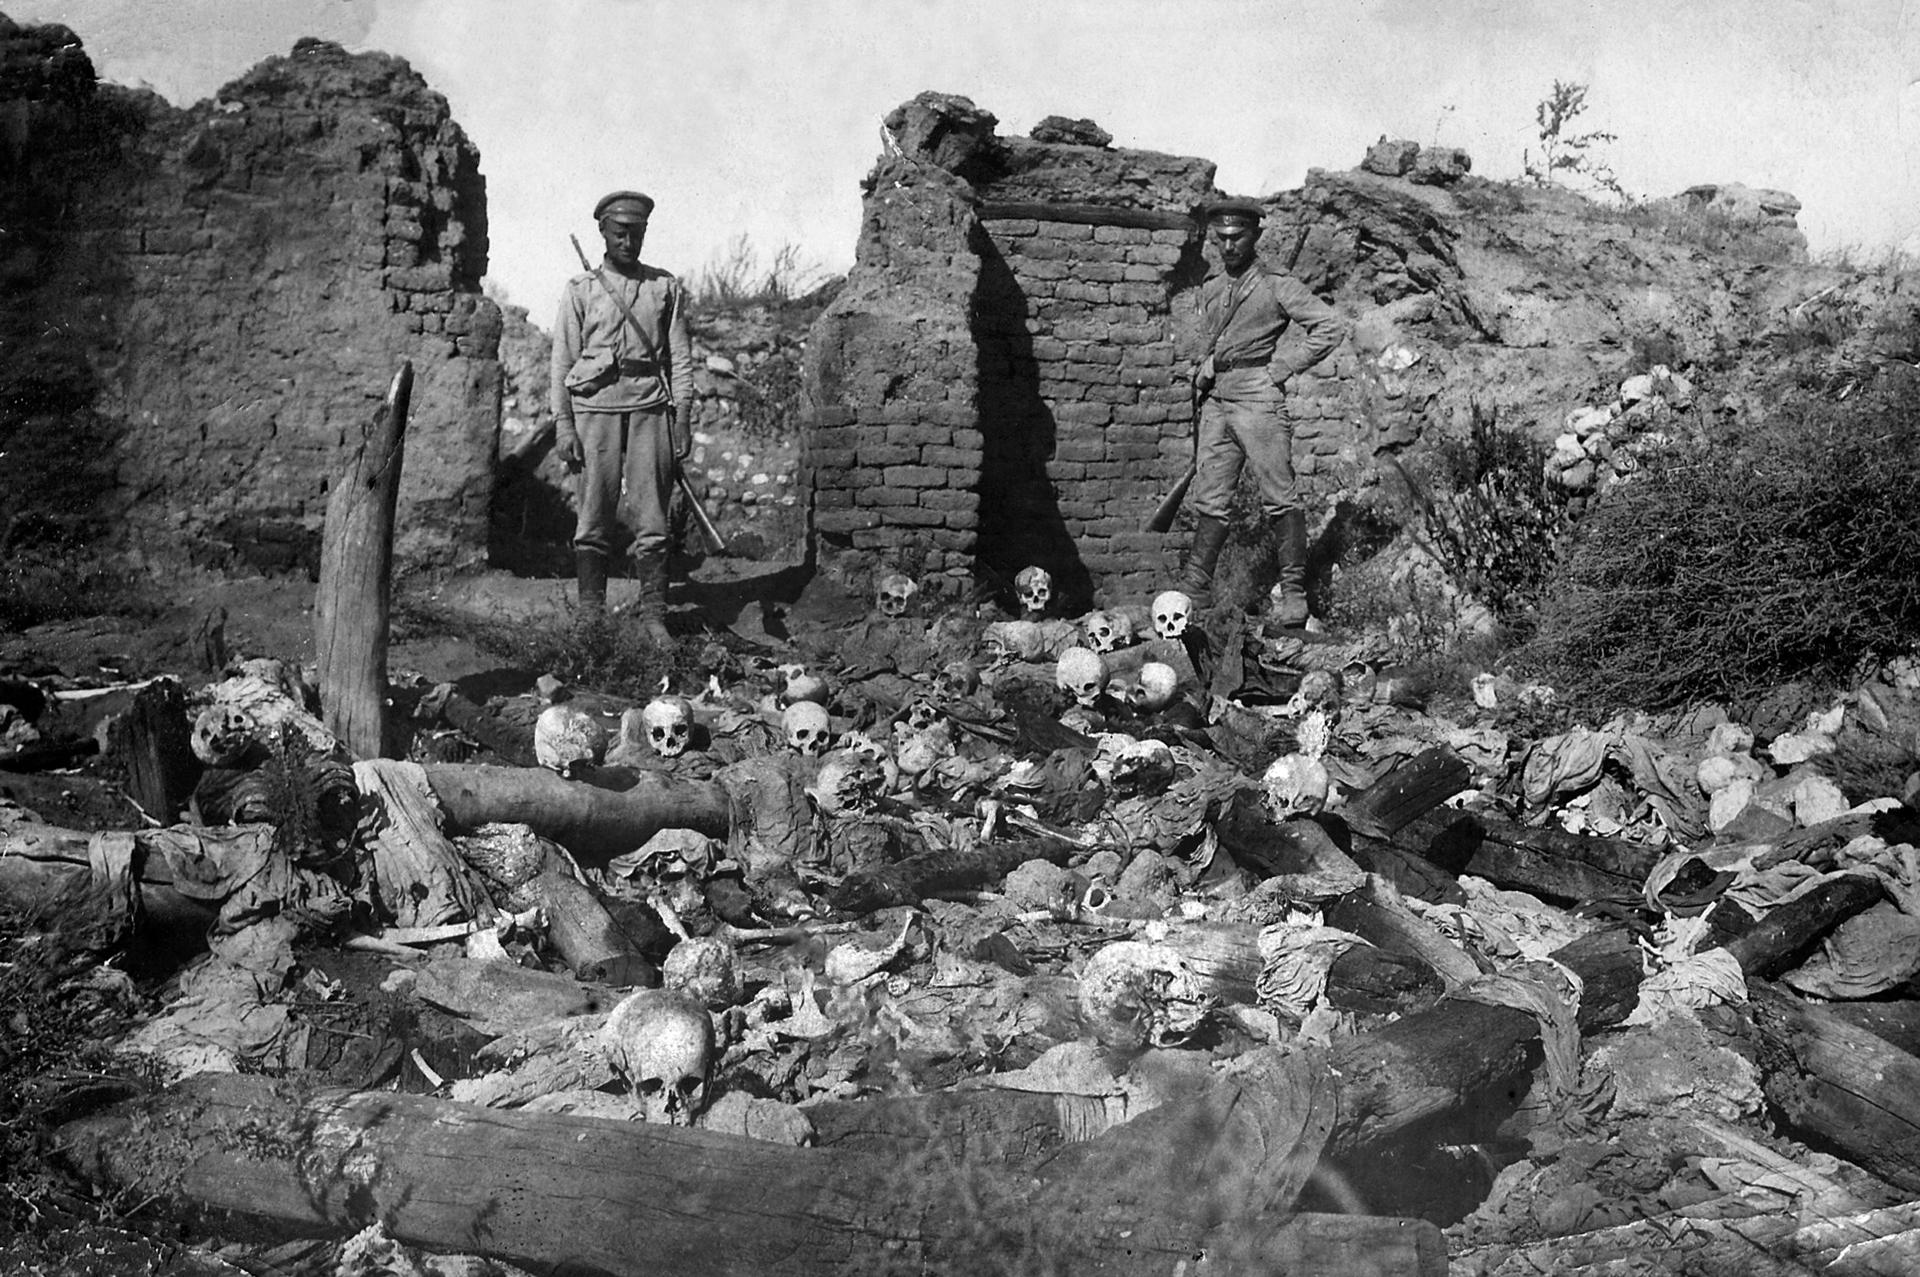 genocide thesis Essays - largest database of quality sample essays and research papers on rwanda genocide thesis statement.